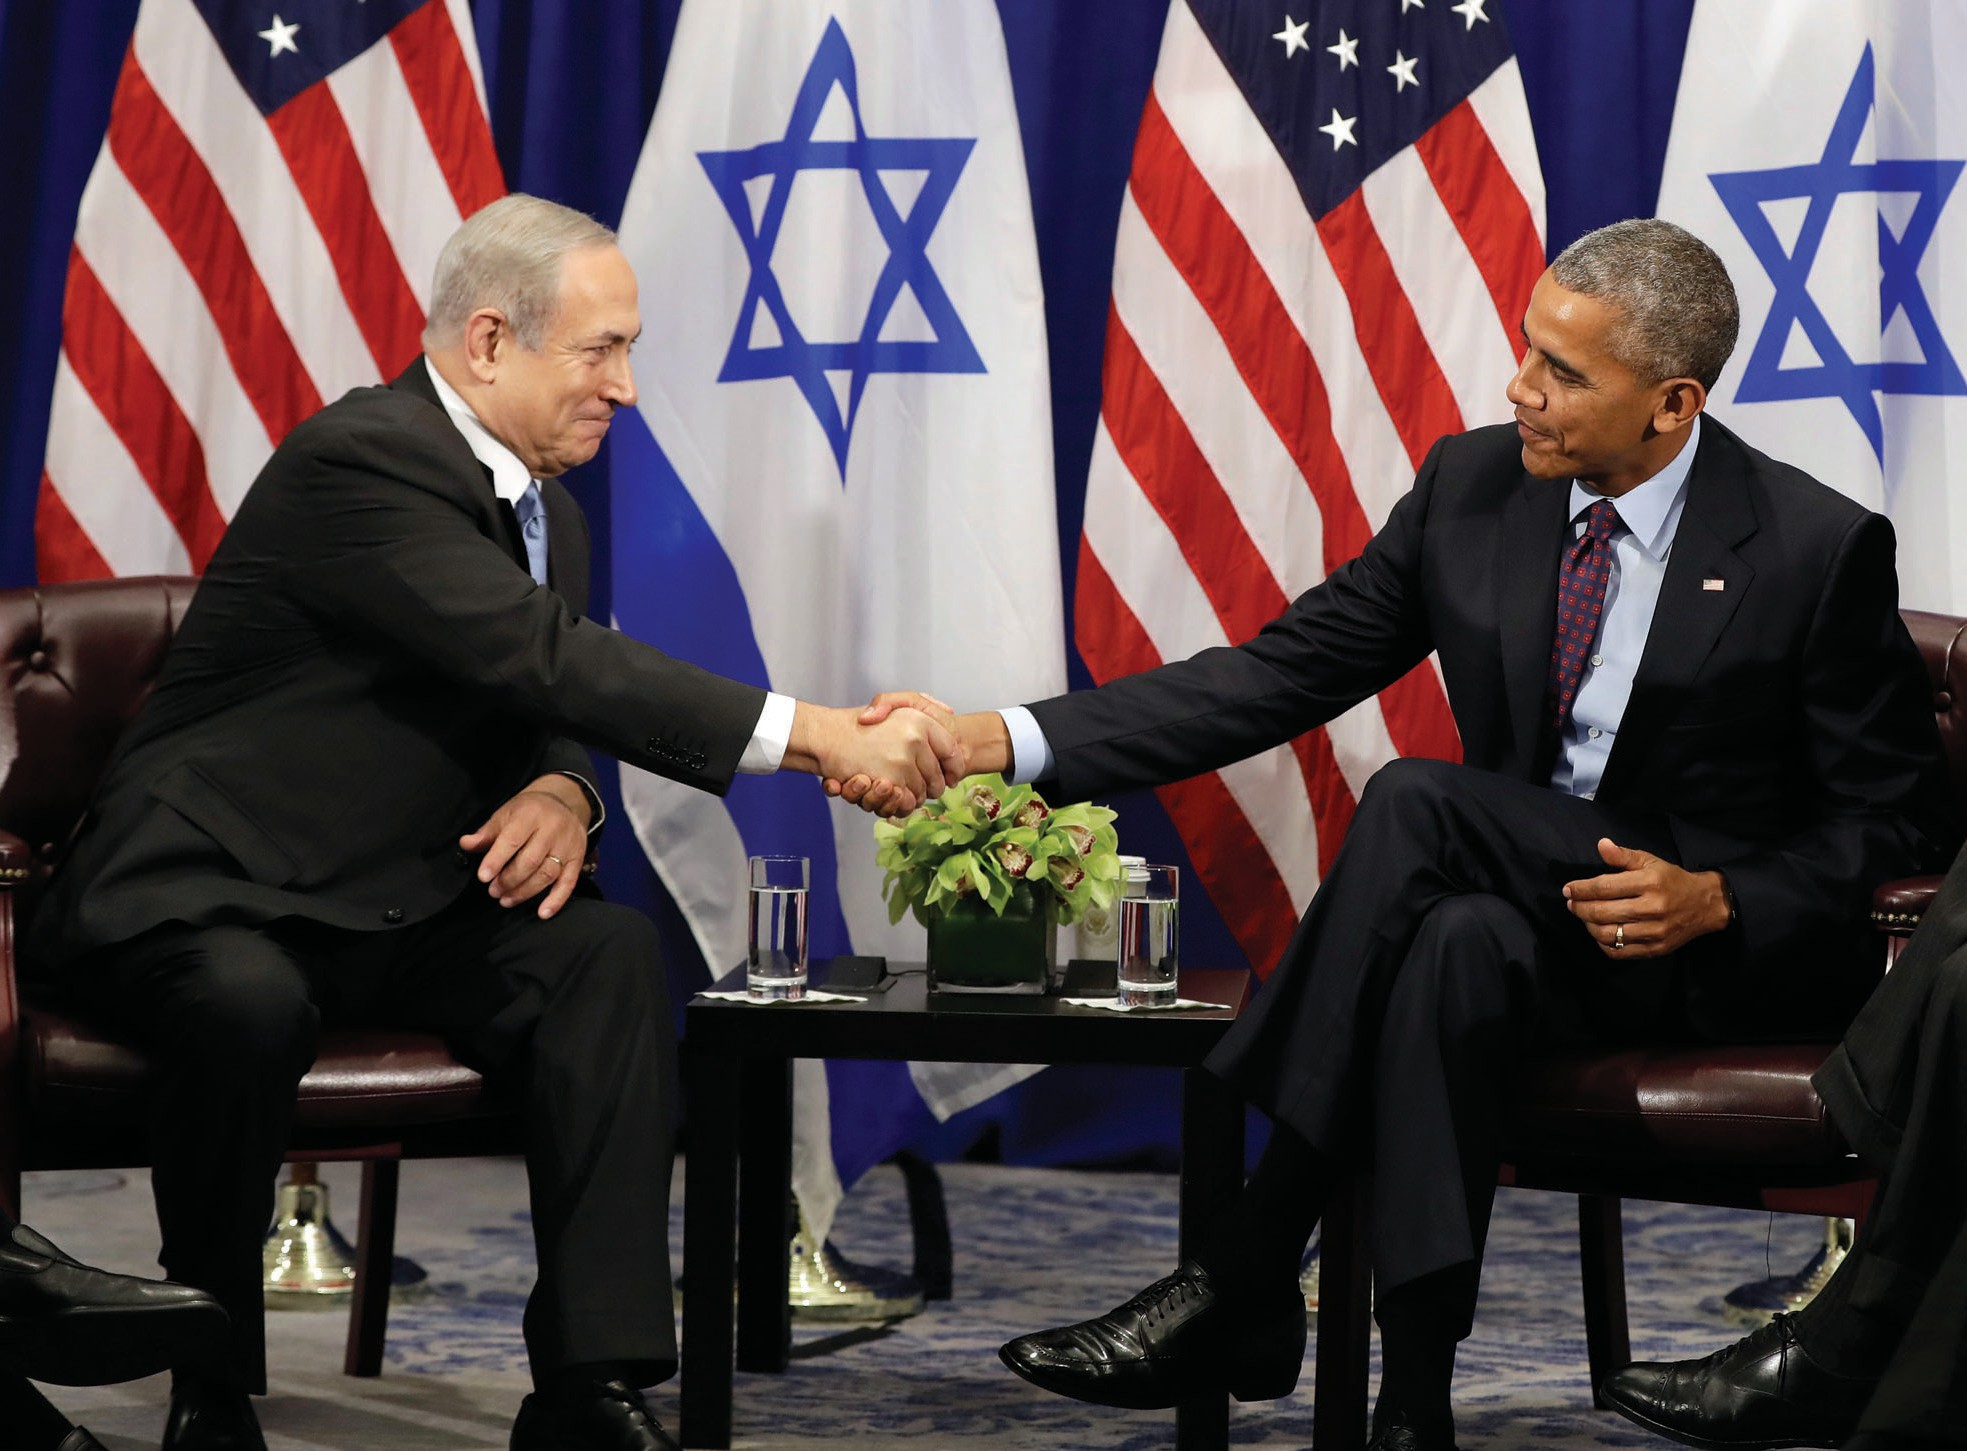 President Barack Obama shakes hands with Israeli Prime Minister Benjamin Netanyahu during a bilateral meeting at the Lotte New York Palace Hotel in New York Wednesday.